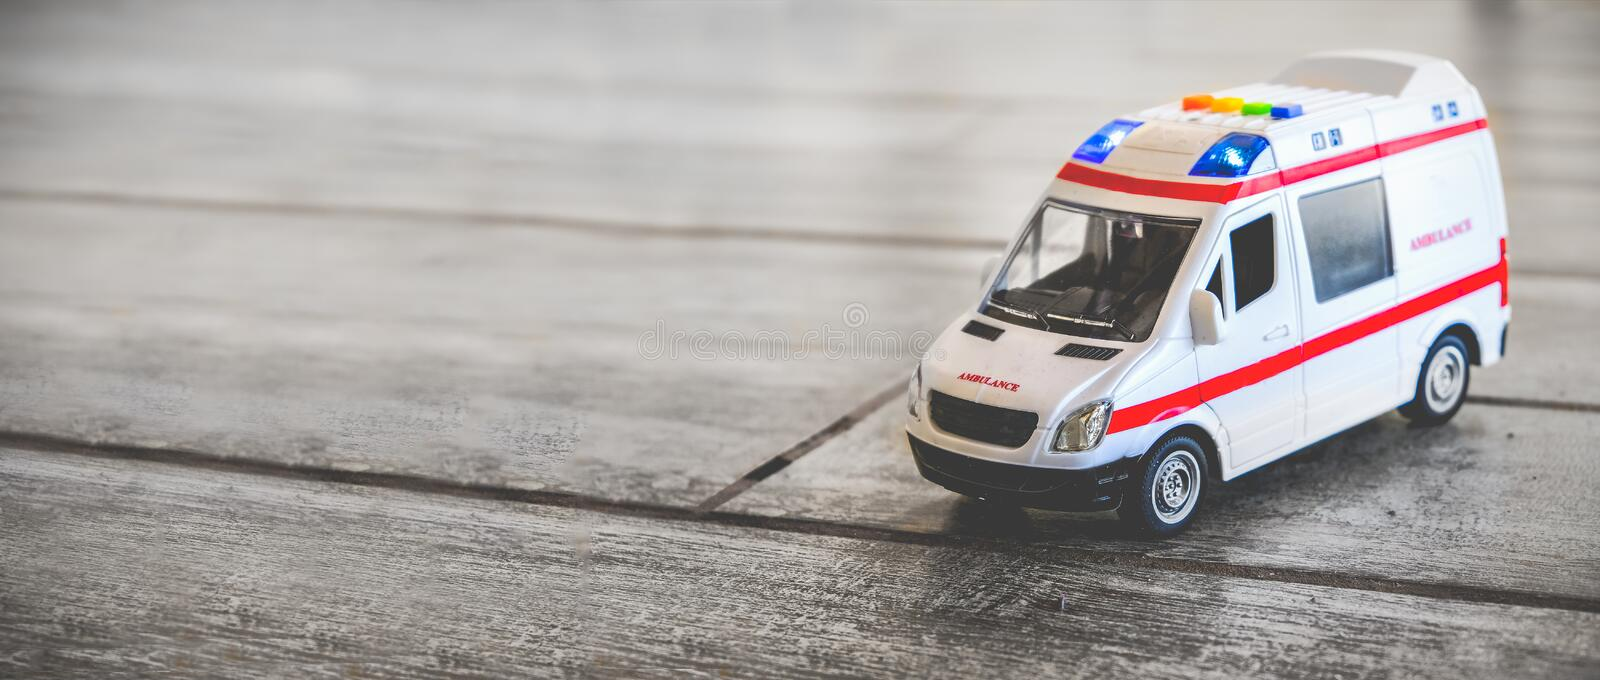 Ambulance horizontal background health care toy sirens blue lights copy space.  stock images